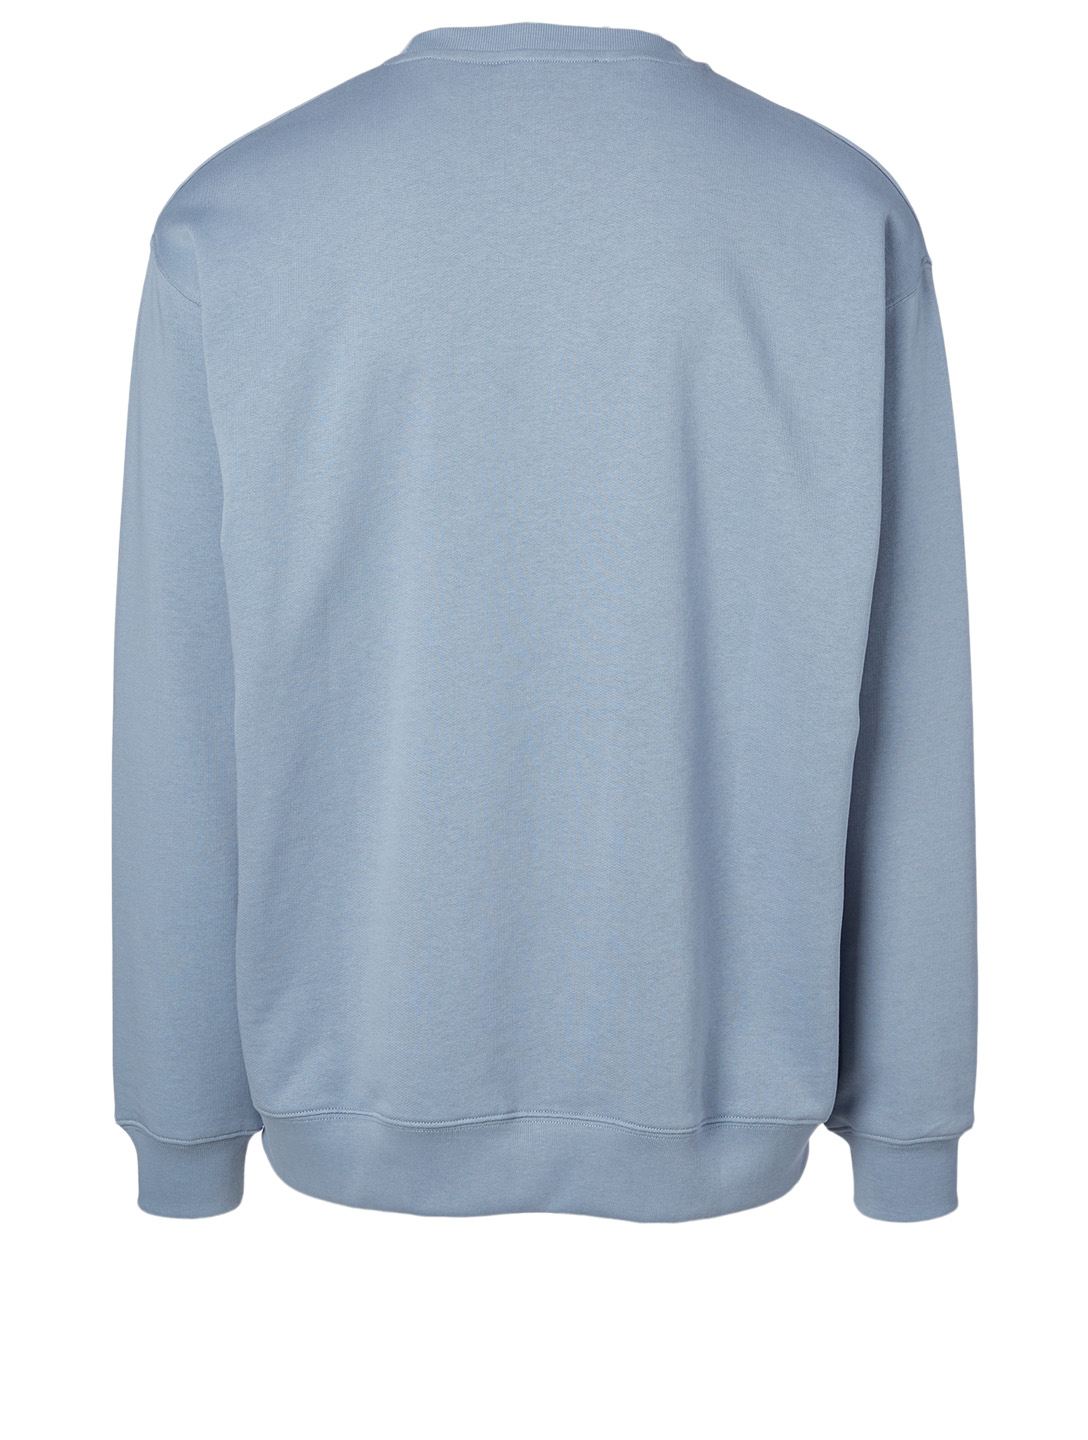 ACNE STUDIOS Cotton Sweatshirt With Logo Patch Men's Blue